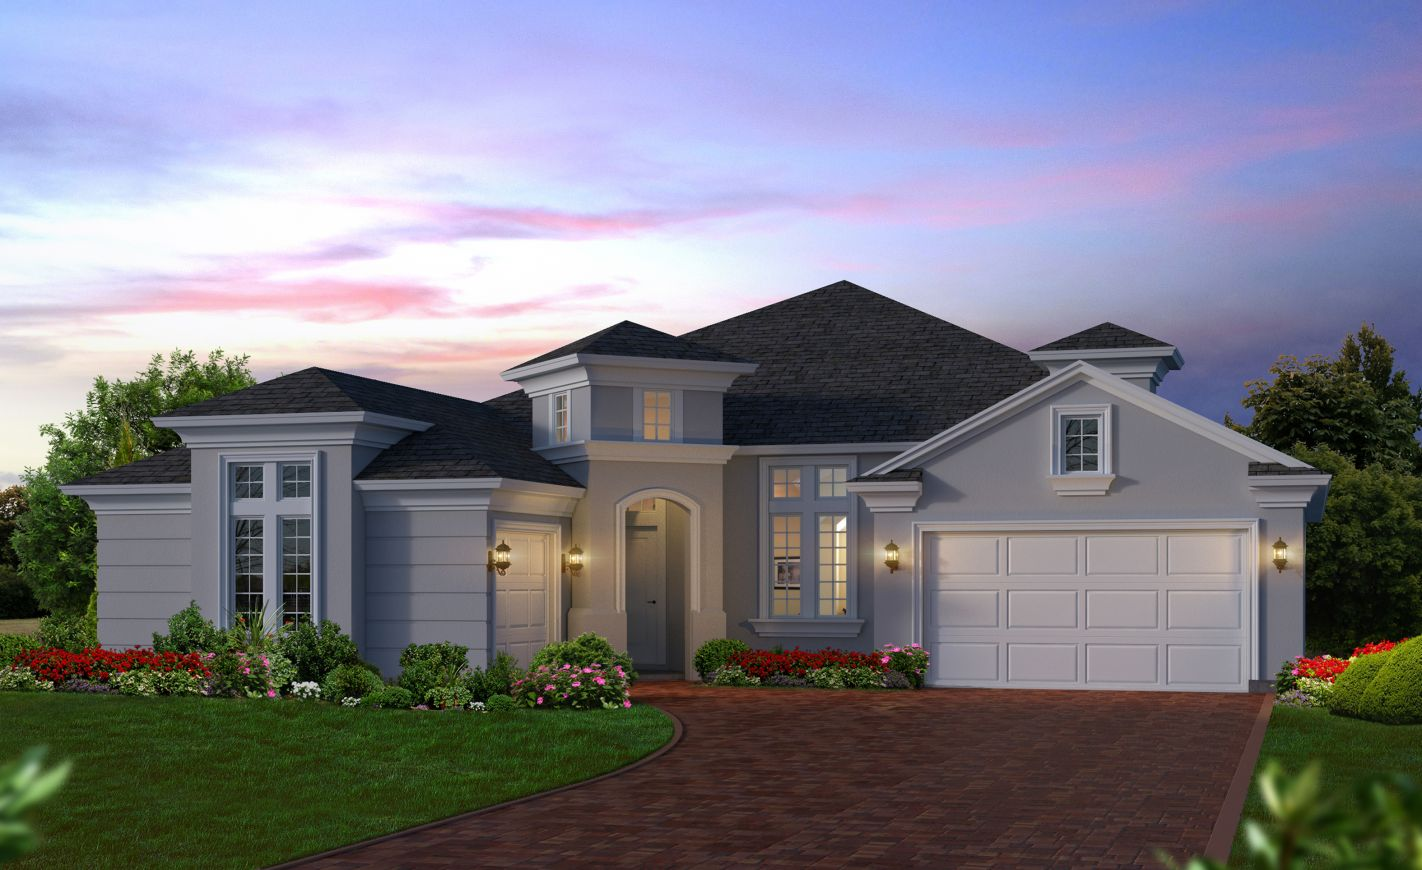 New homes in amelia national fernandina beach ici homes for New homes that look old